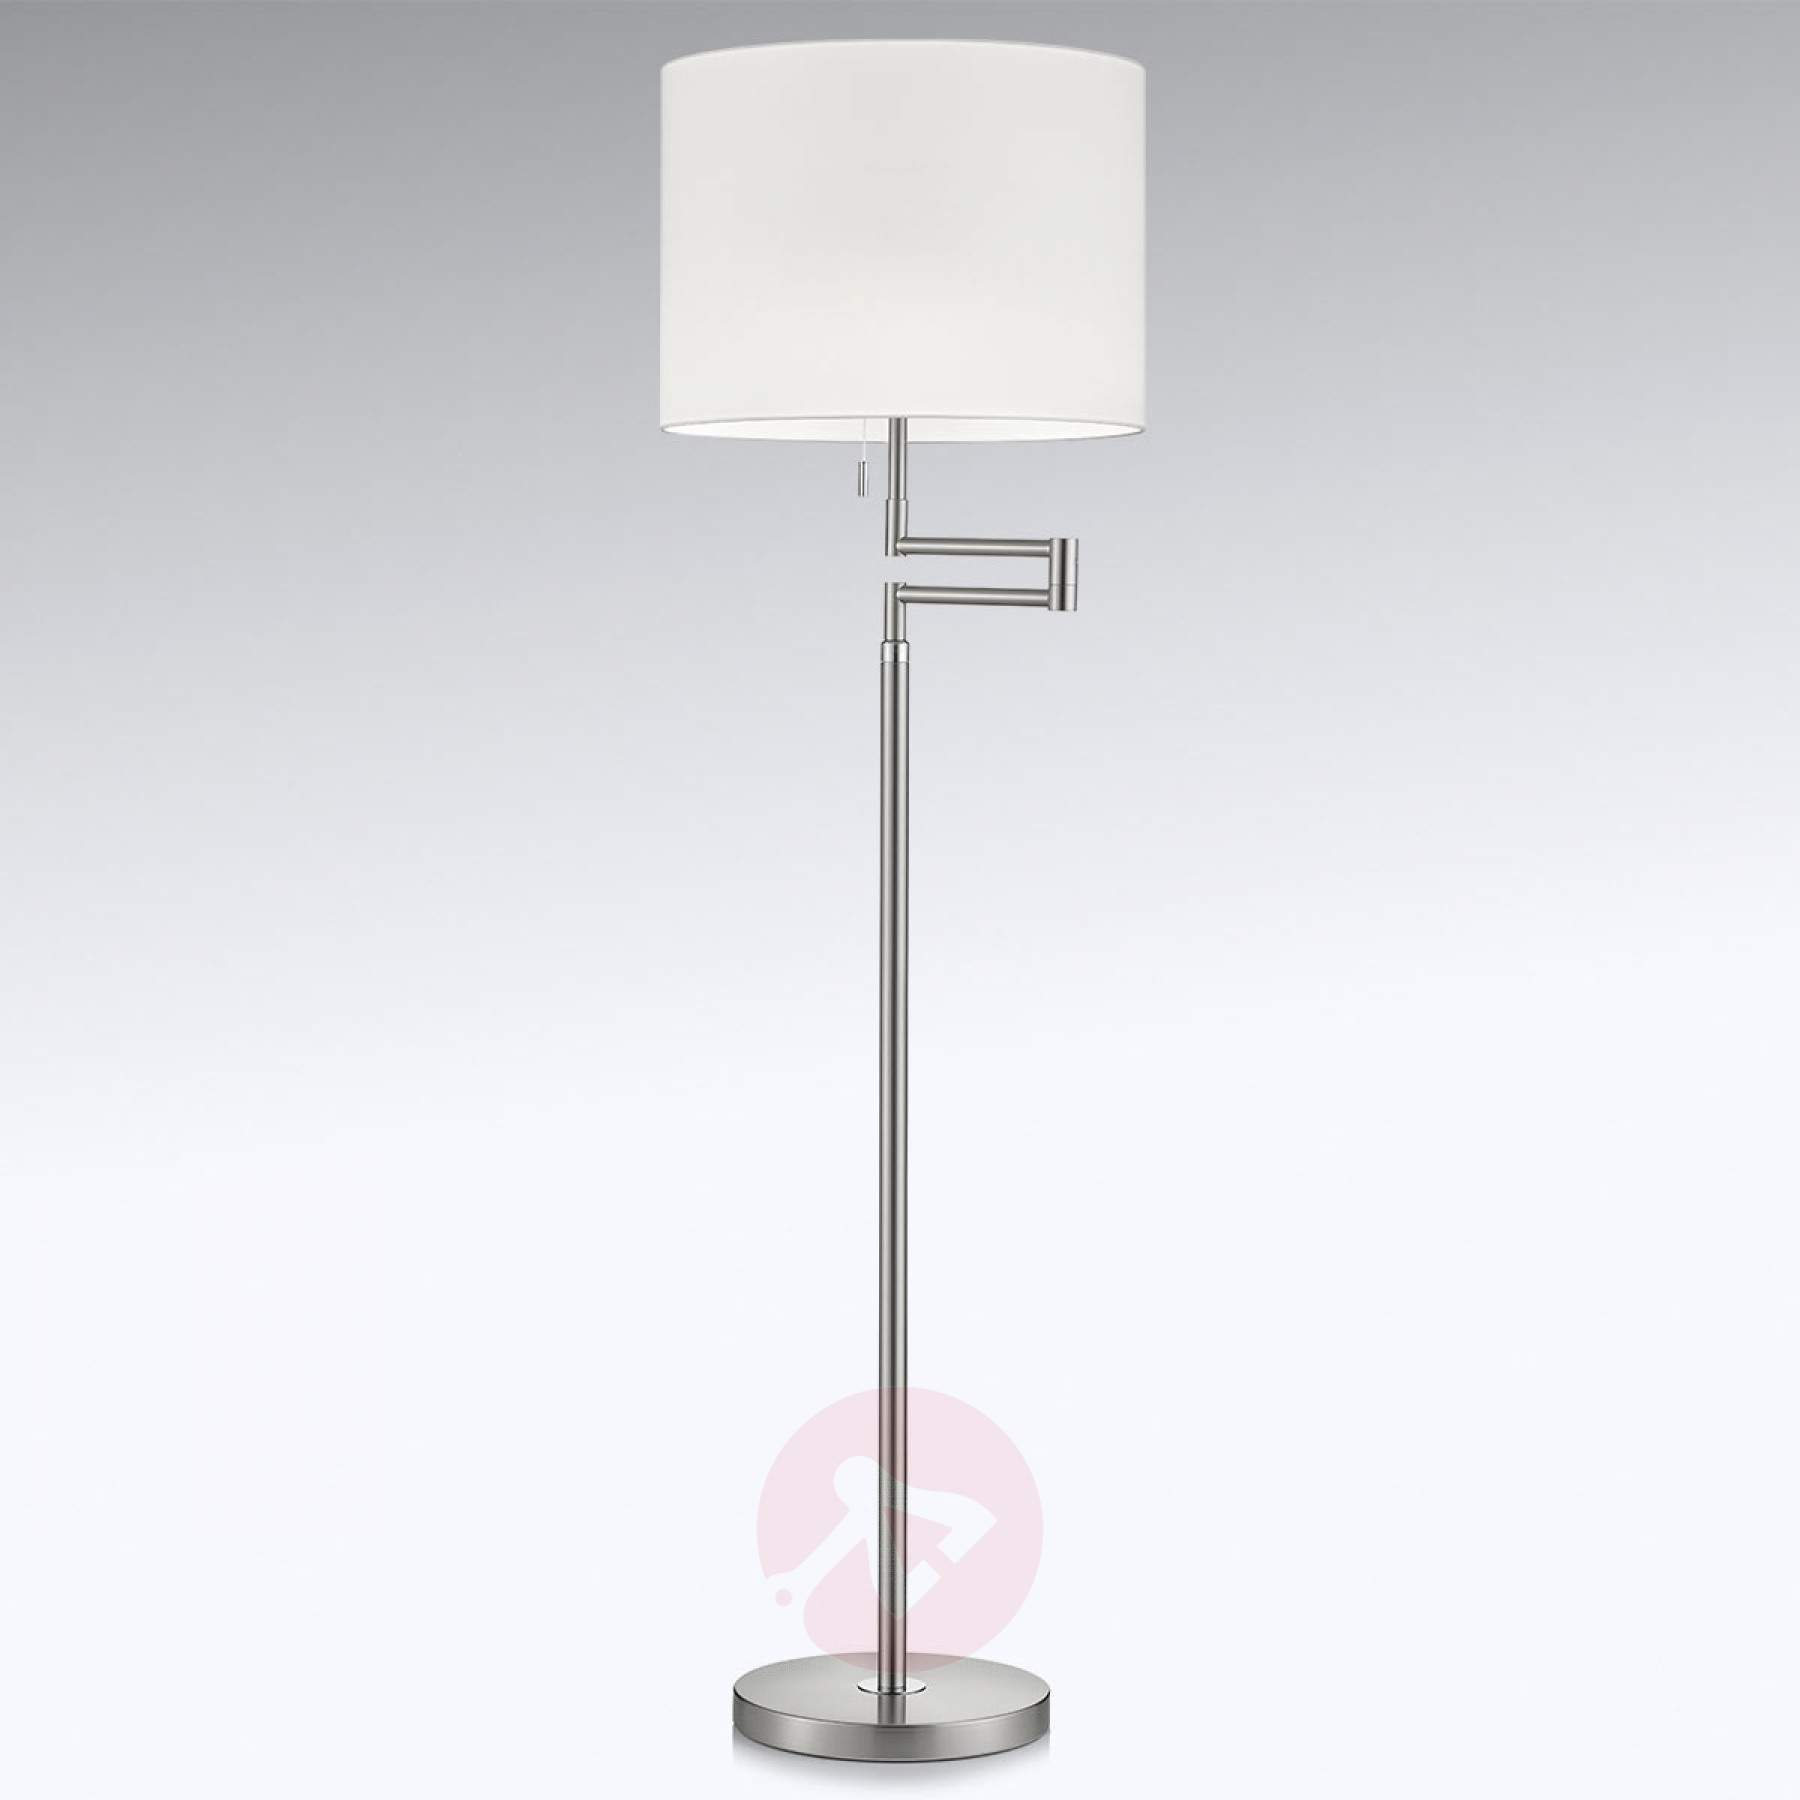 Full Size of Stehlampe Dimmbar Flexible Led Stehleuchte Lilian Stehlampen Wohnzimmer Schlafzimmer Wohnzimmer Stehlampe Dimmbar